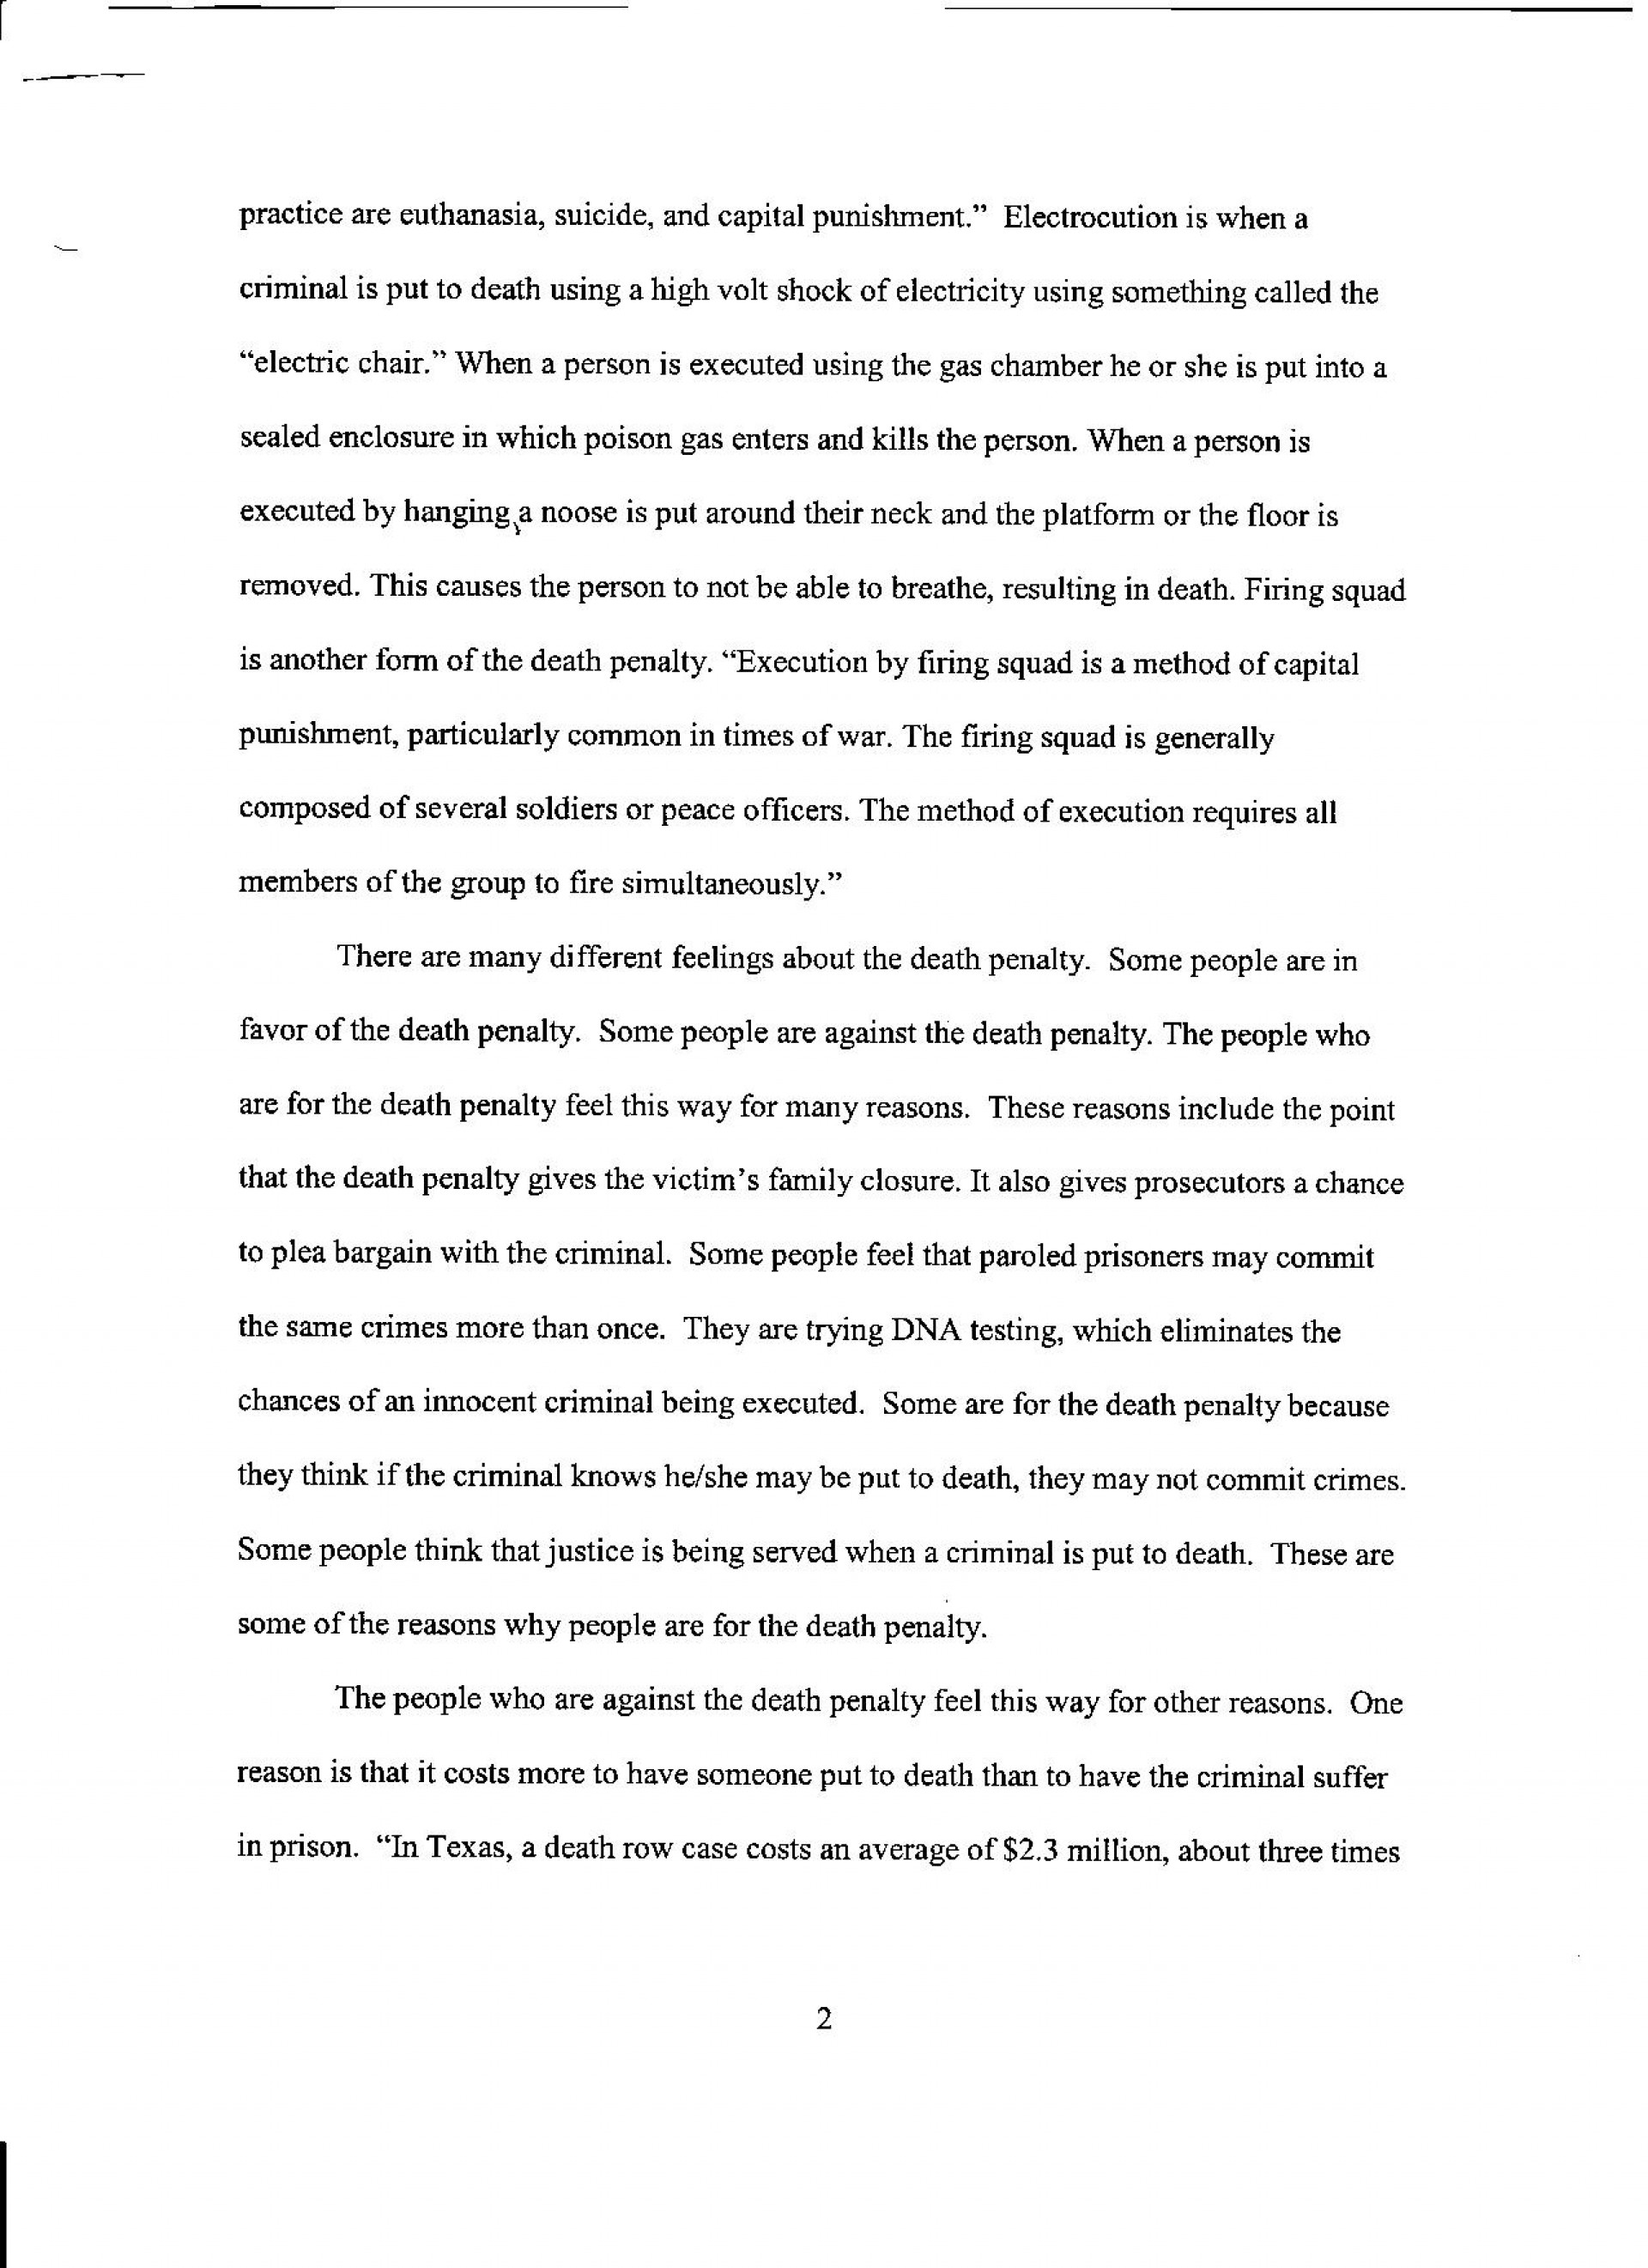 006 Research Paper On Death Penalty Pg Best Report Pdf 1920